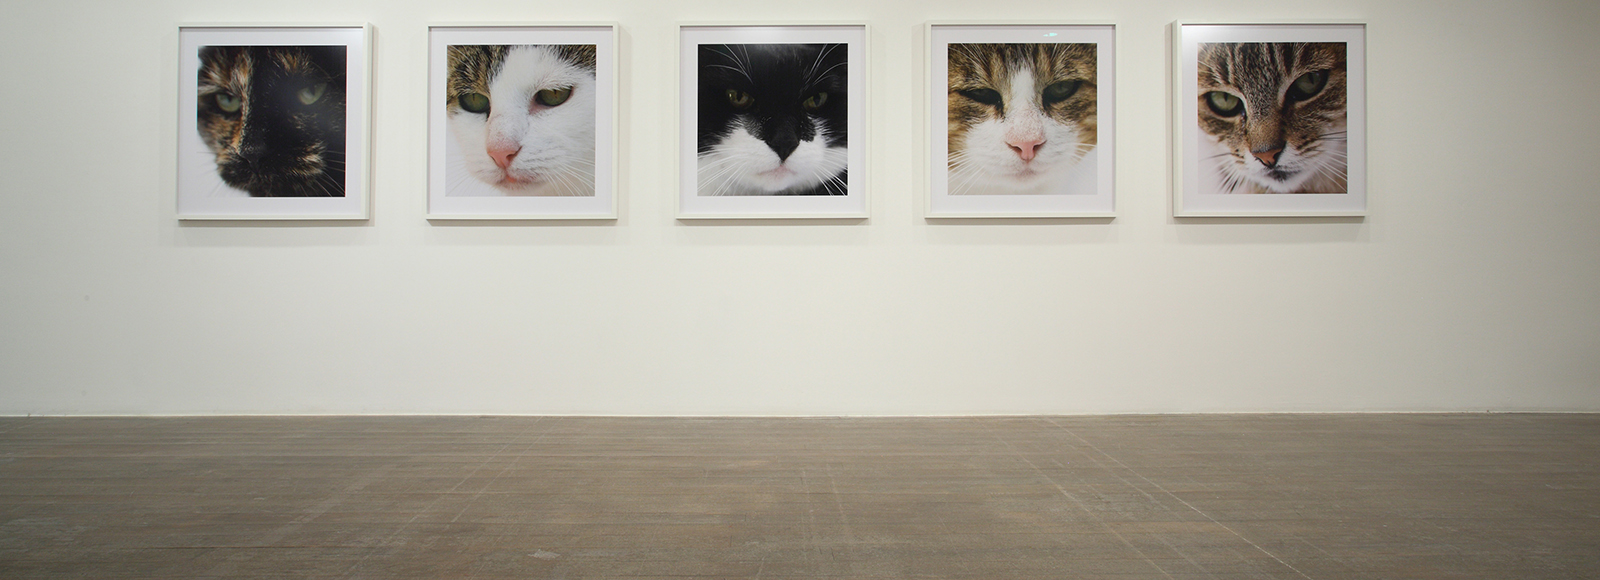 Su-Mei Tse, In collaboration with Jean-Lou Majerus, Son pour Insomniaques (Sound for Insomniacs), 2007, five framed photographs, each 104 x 104 cm; two seats with embedded MP3 players. Courtesy the artist and Peter Blum Gallery, New York